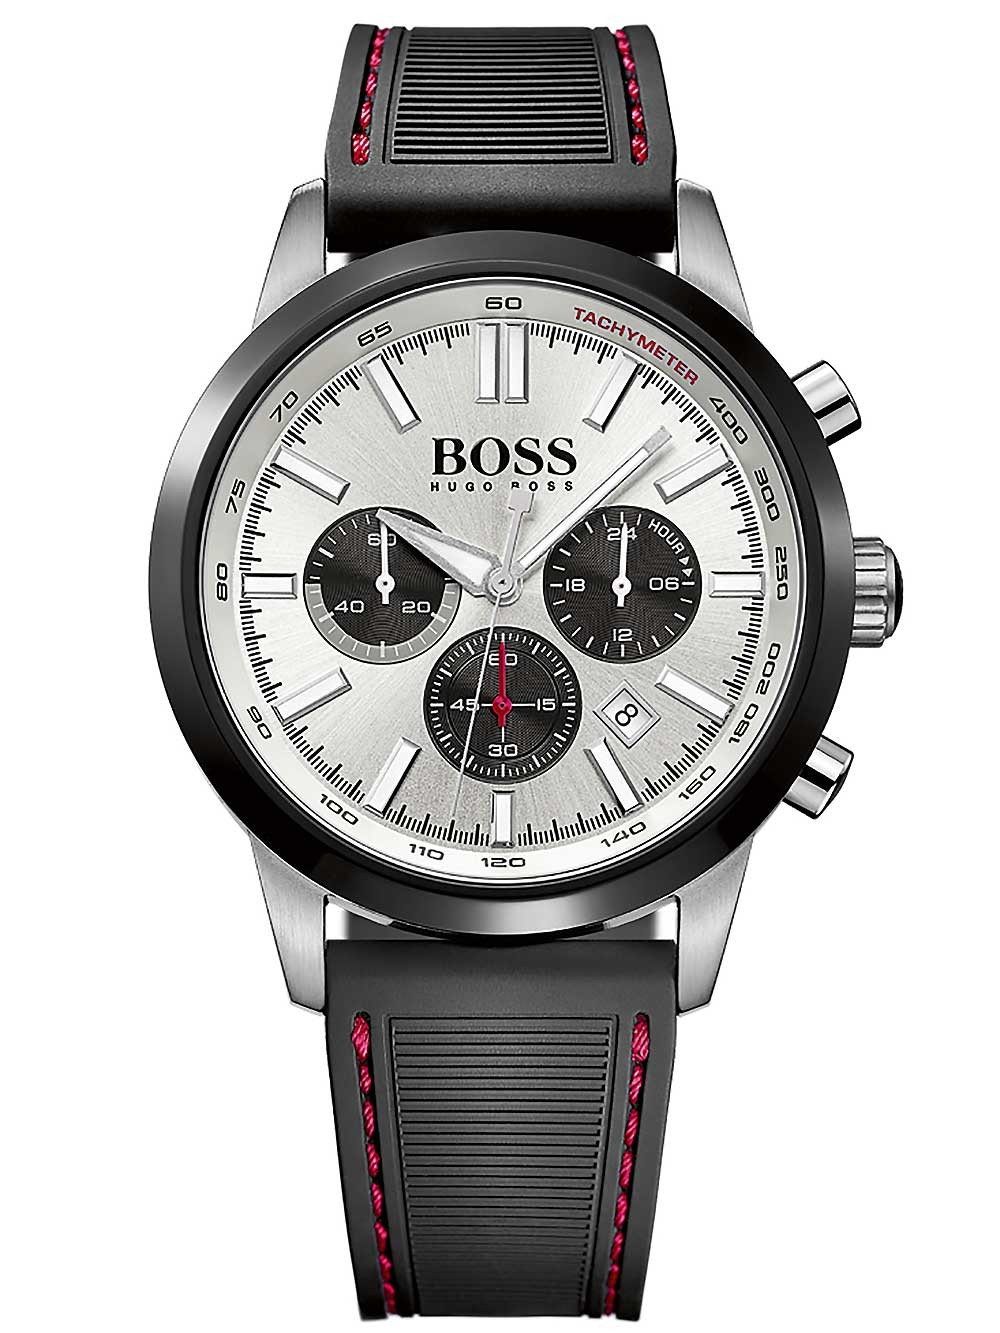 watches chrono12 hugo boss 1513185 racing chrono. Black Bedroom Furniture Sets. Home Design Ideas